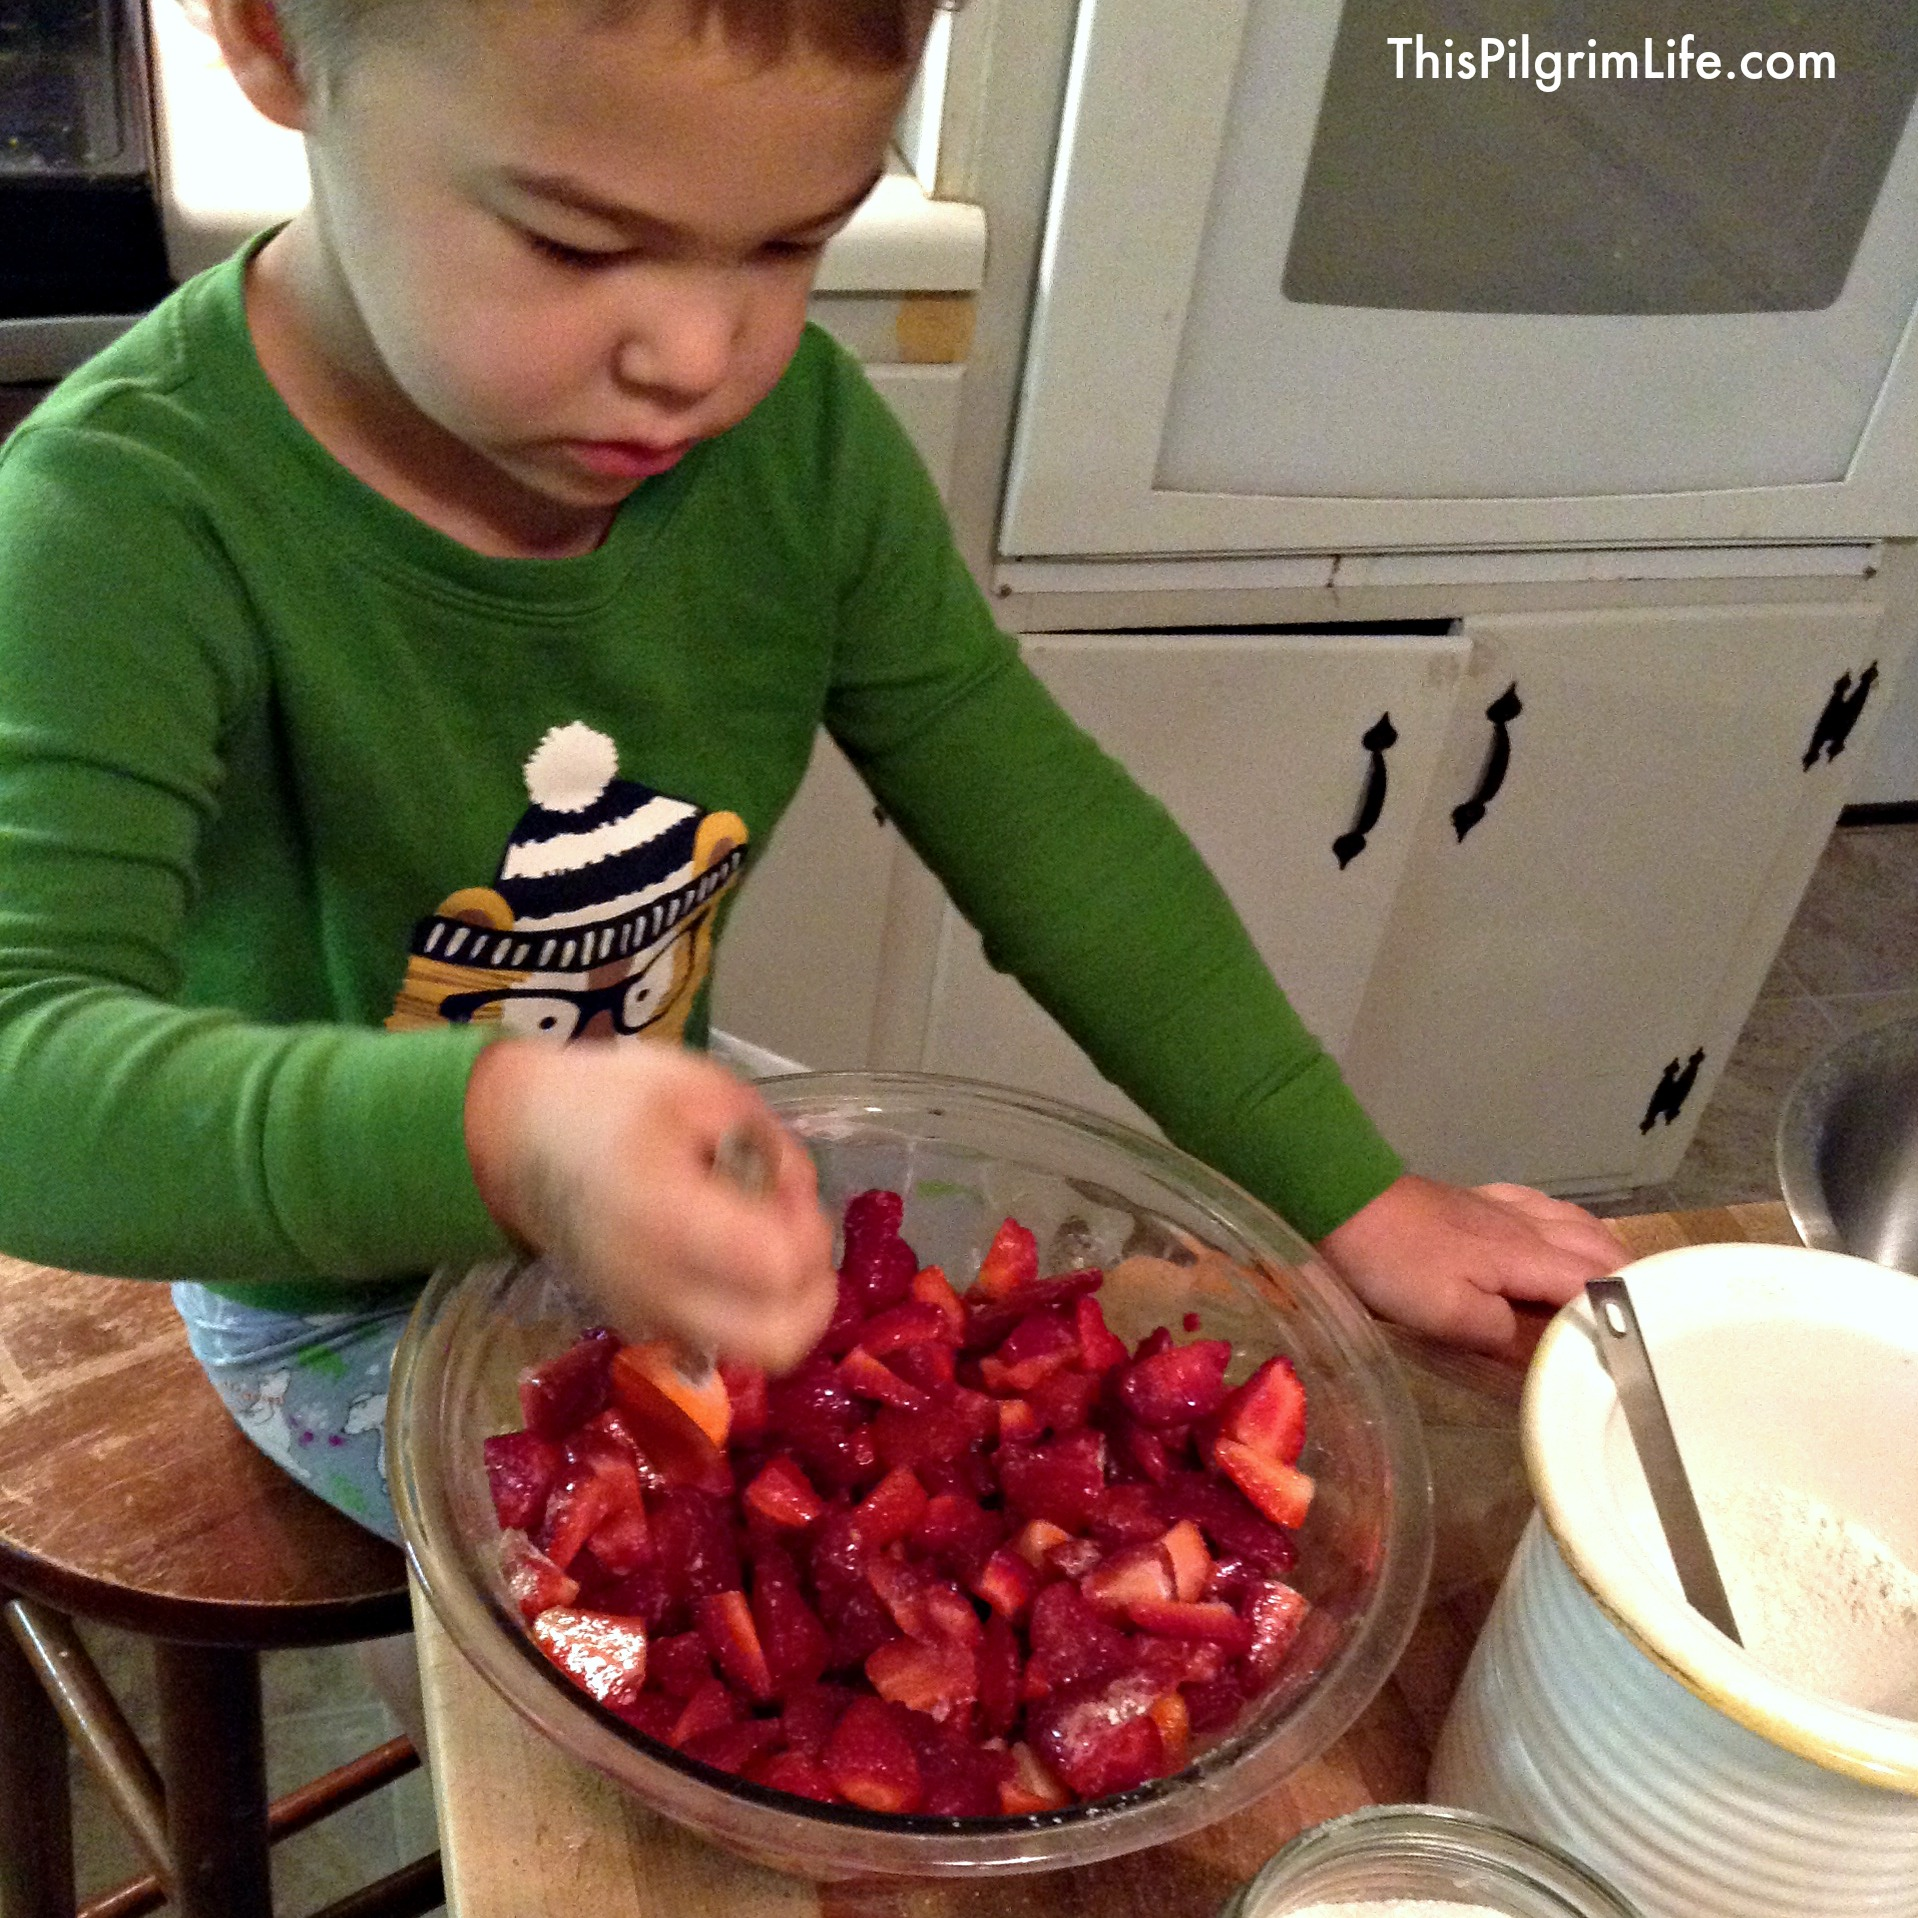 Helping mama to make a simple strawberry crisp for church.